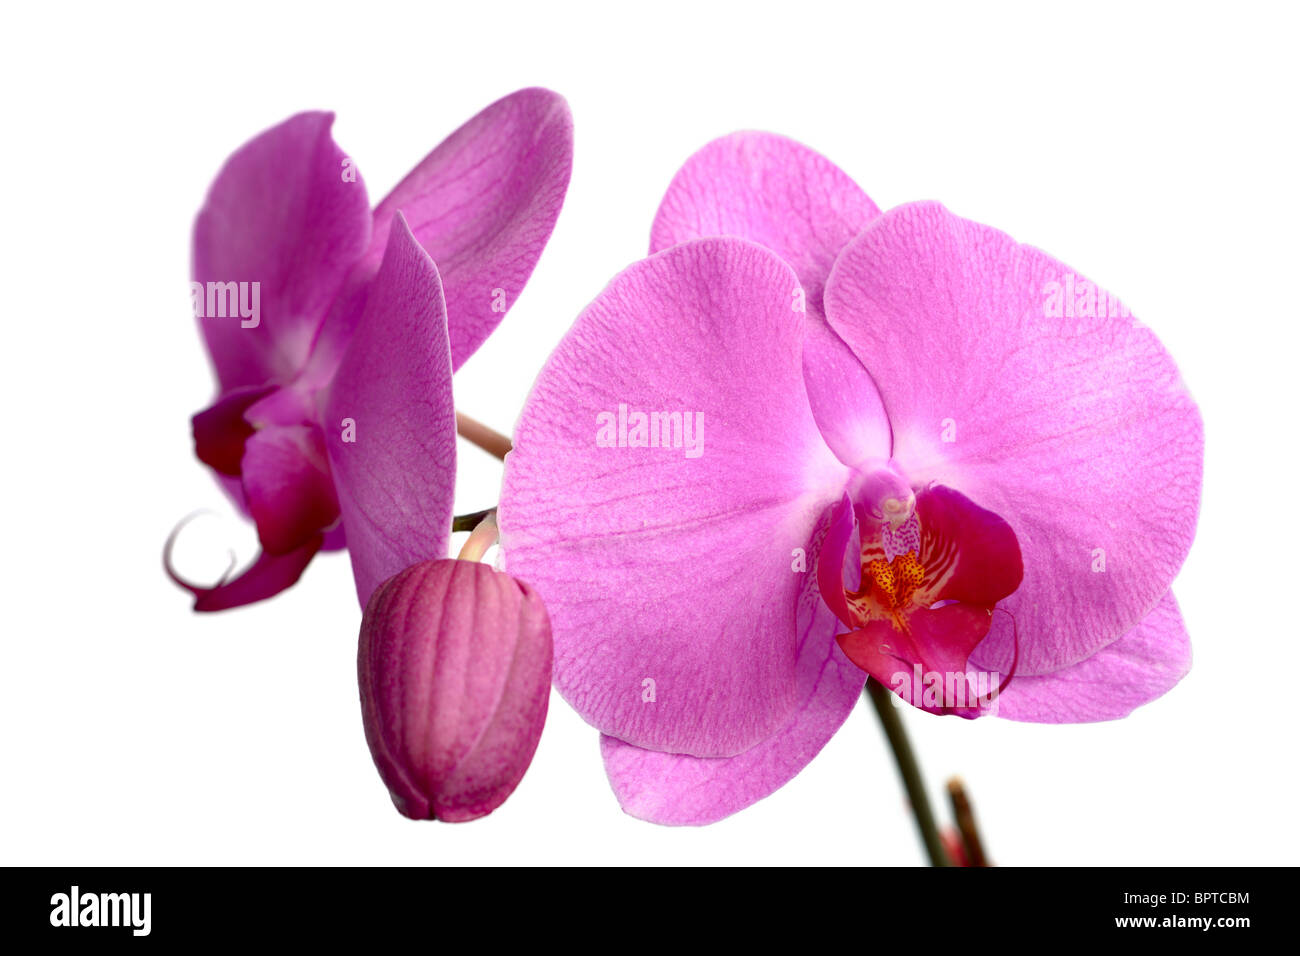 A collection of pink Phalaenopsis (moth orchid) blooms - Stock Image